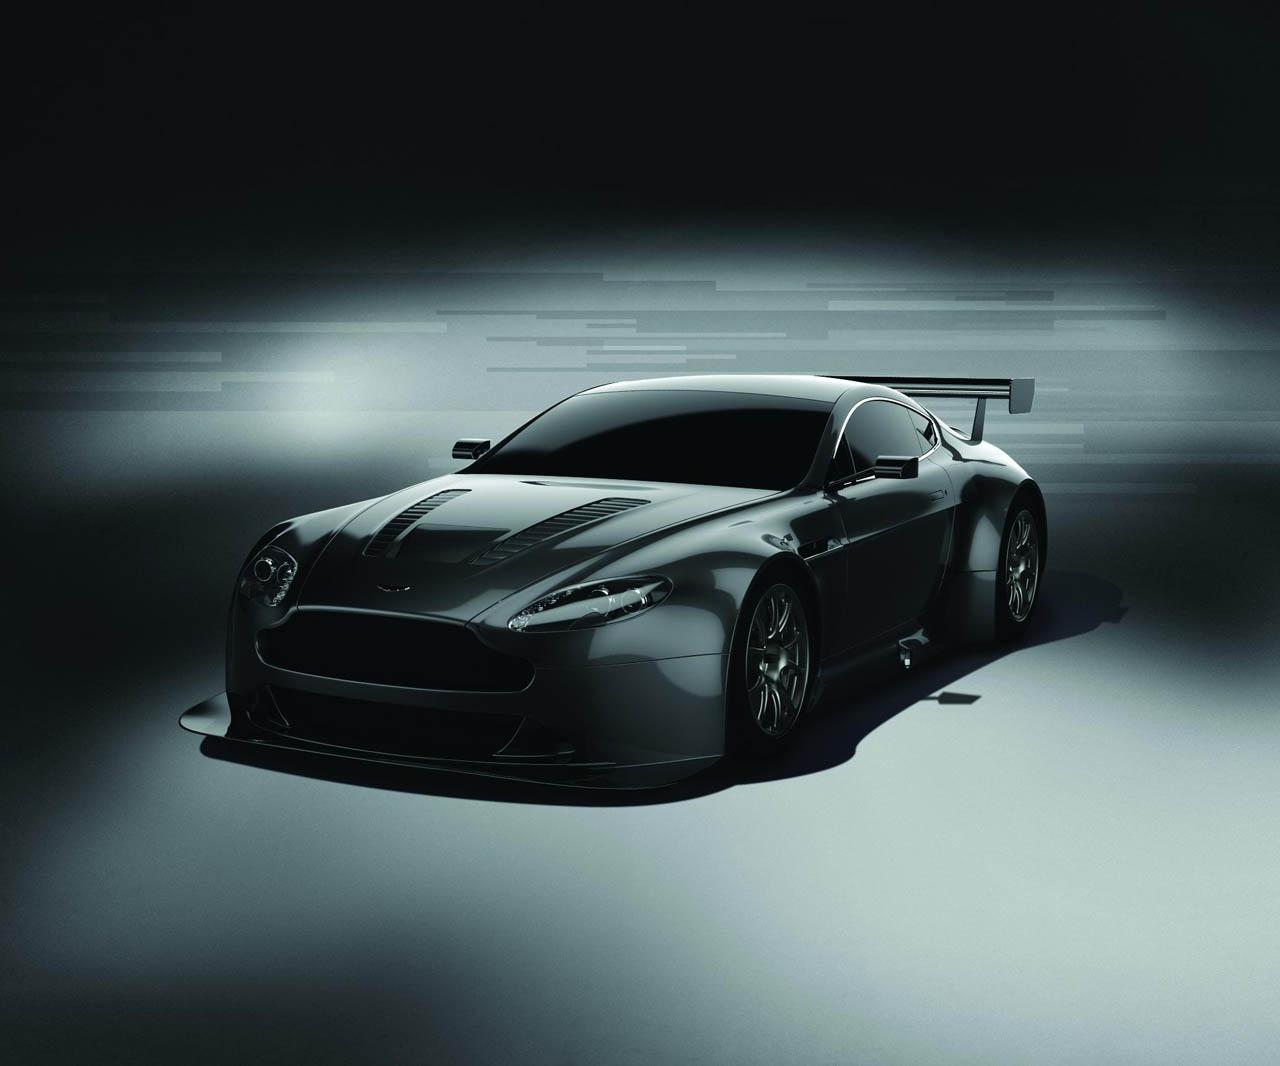 2011 Aston Martin Vantage Gt3 News And Information Research And Pricing